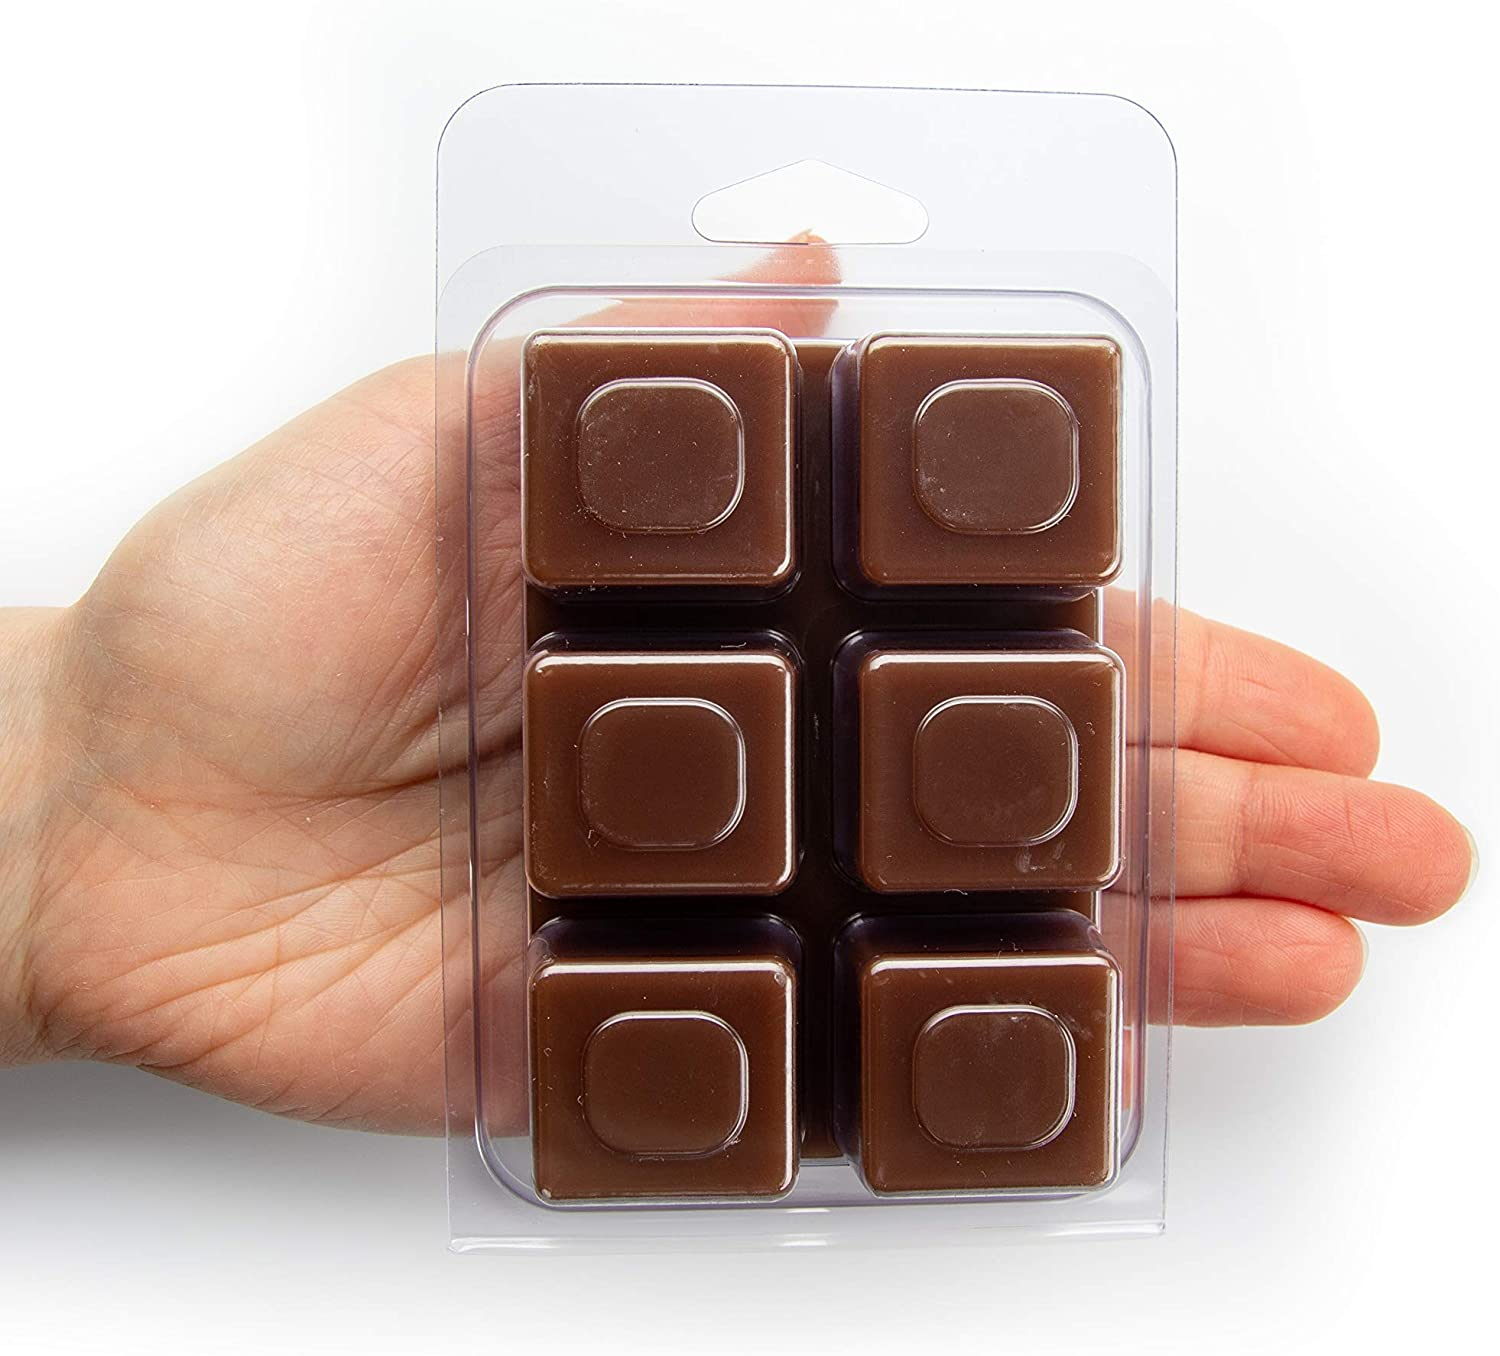 Chocolate Brownie Soy Wax melts 3oz clamshell 100/% Soy Wax